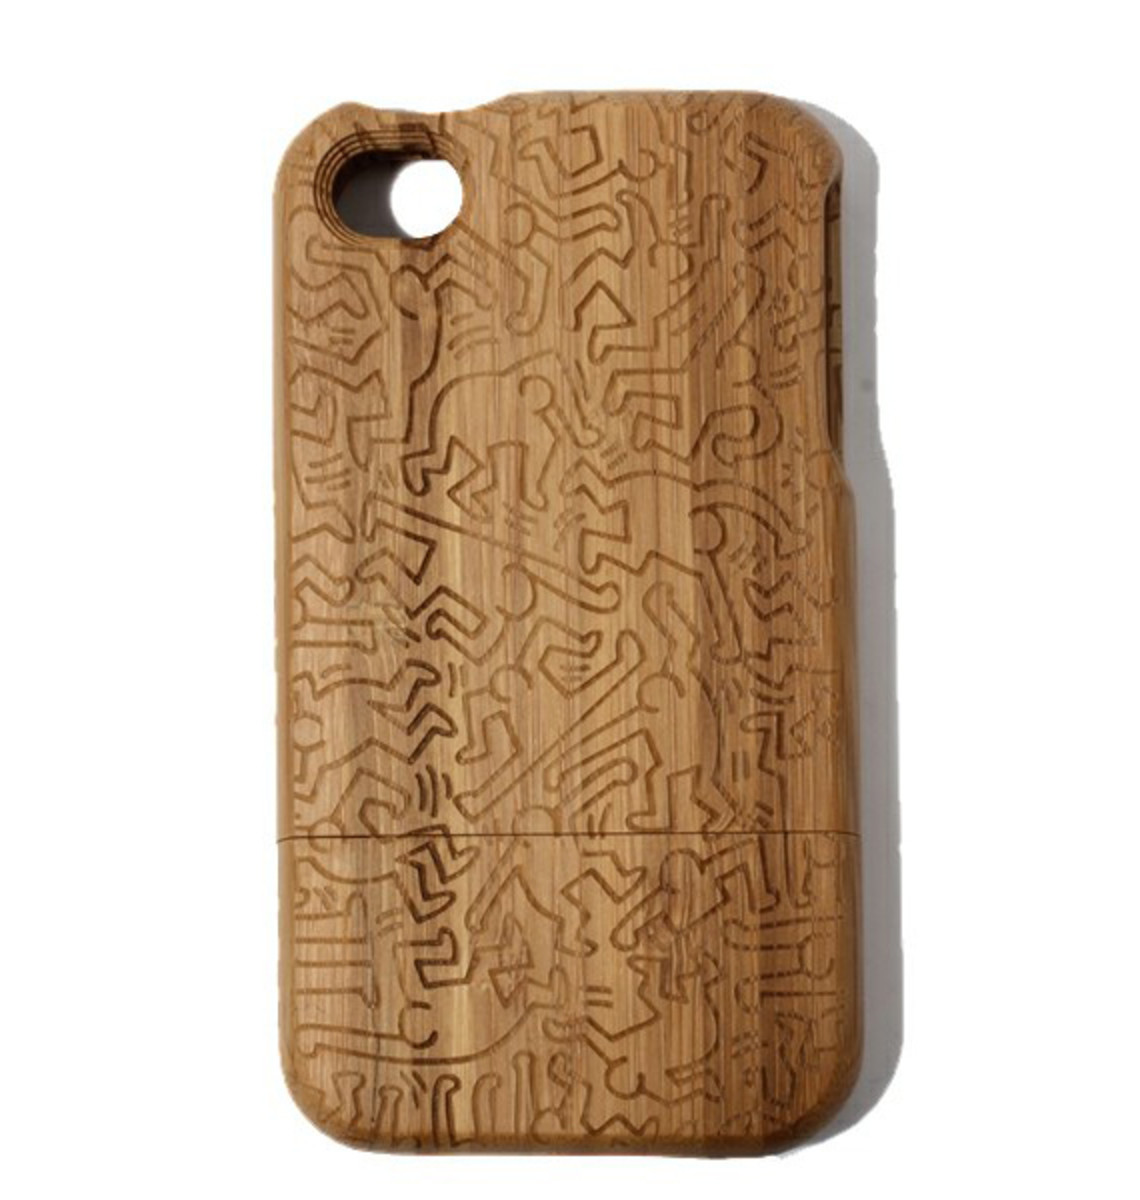 keith-haring-colors-iphone-4-bamboo-case-01